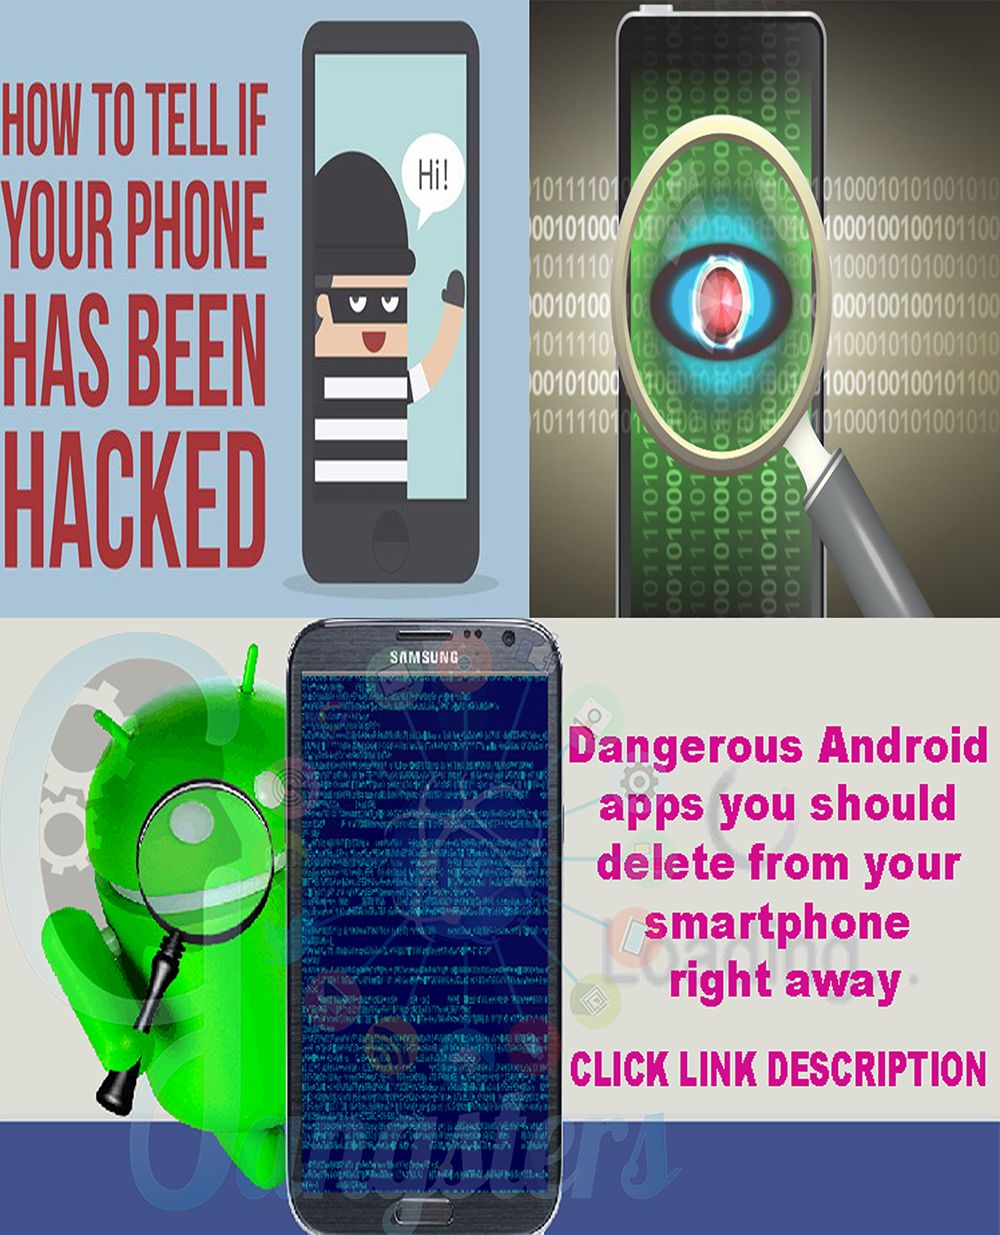 SmartPhones Technews Android Beware, your phone may be